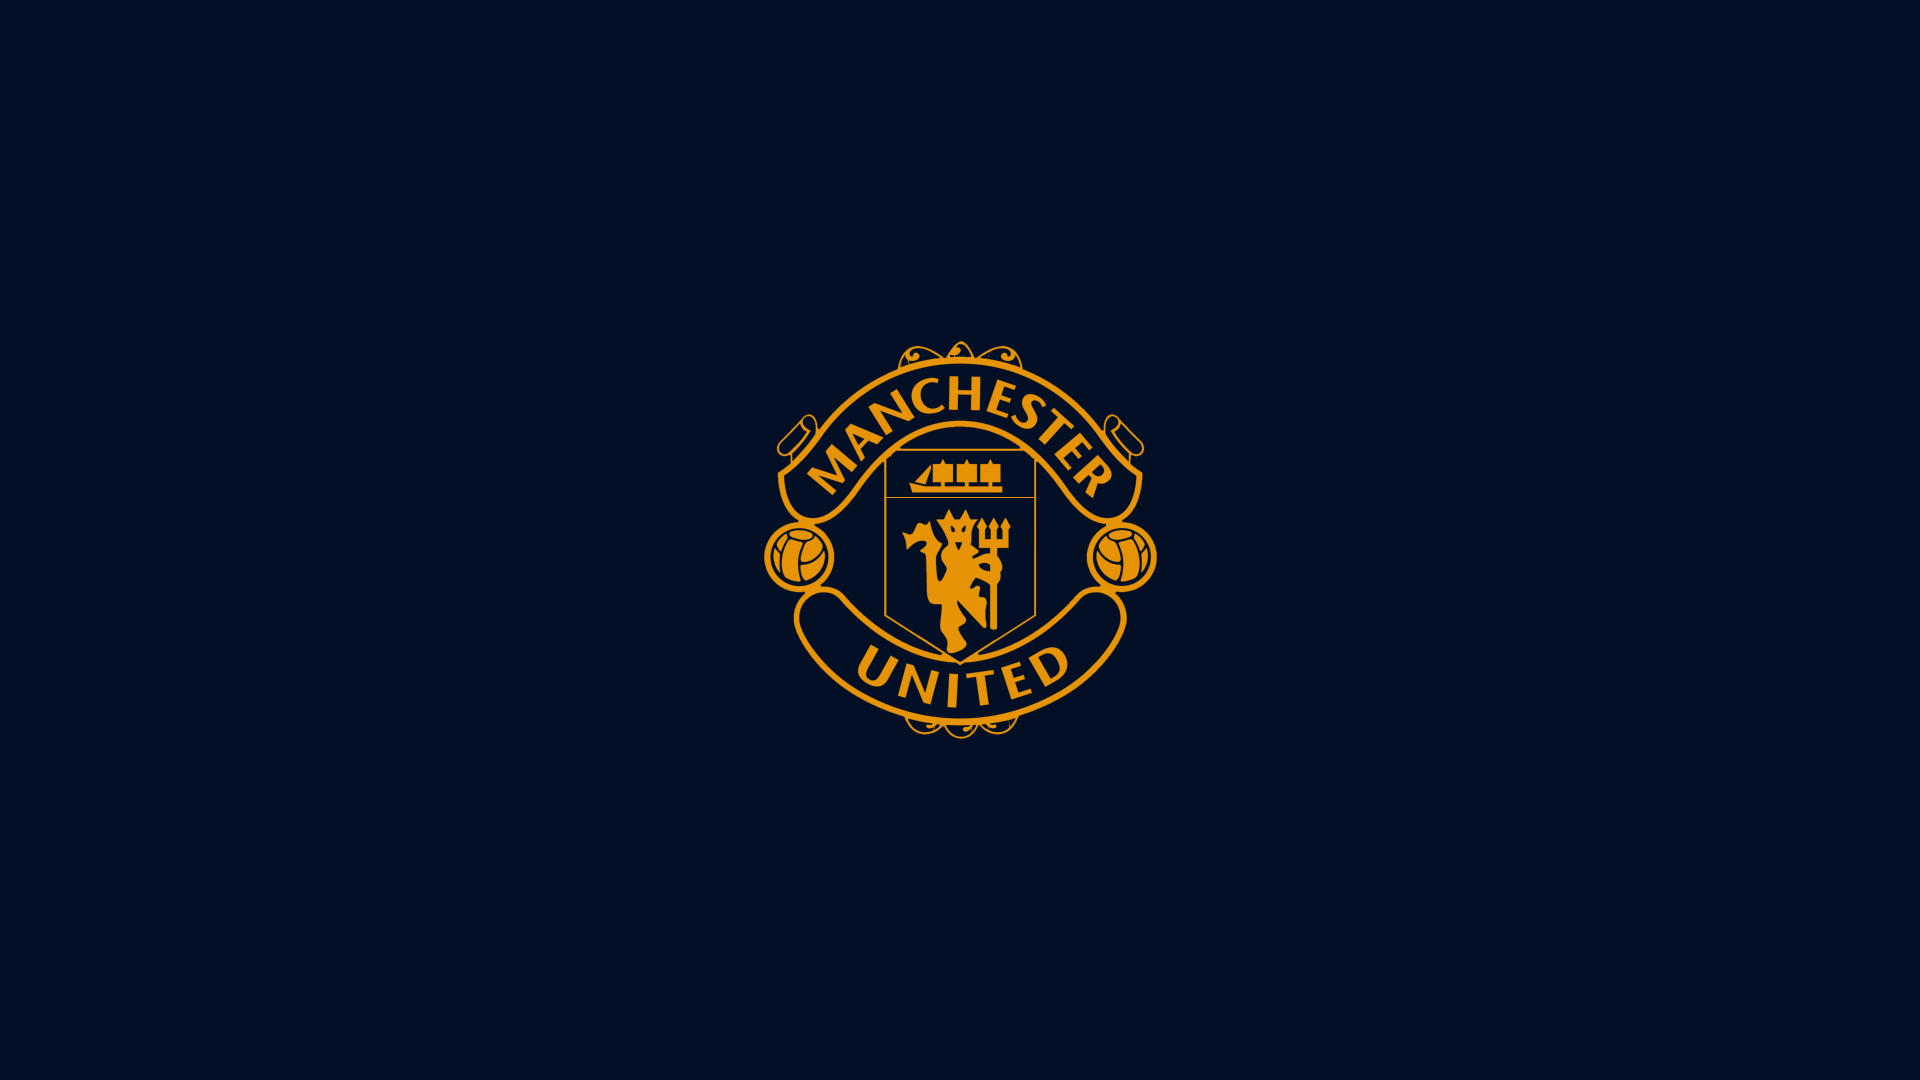 Hd wallpaper manchester united - Hd Wallpaper Manchester United 9